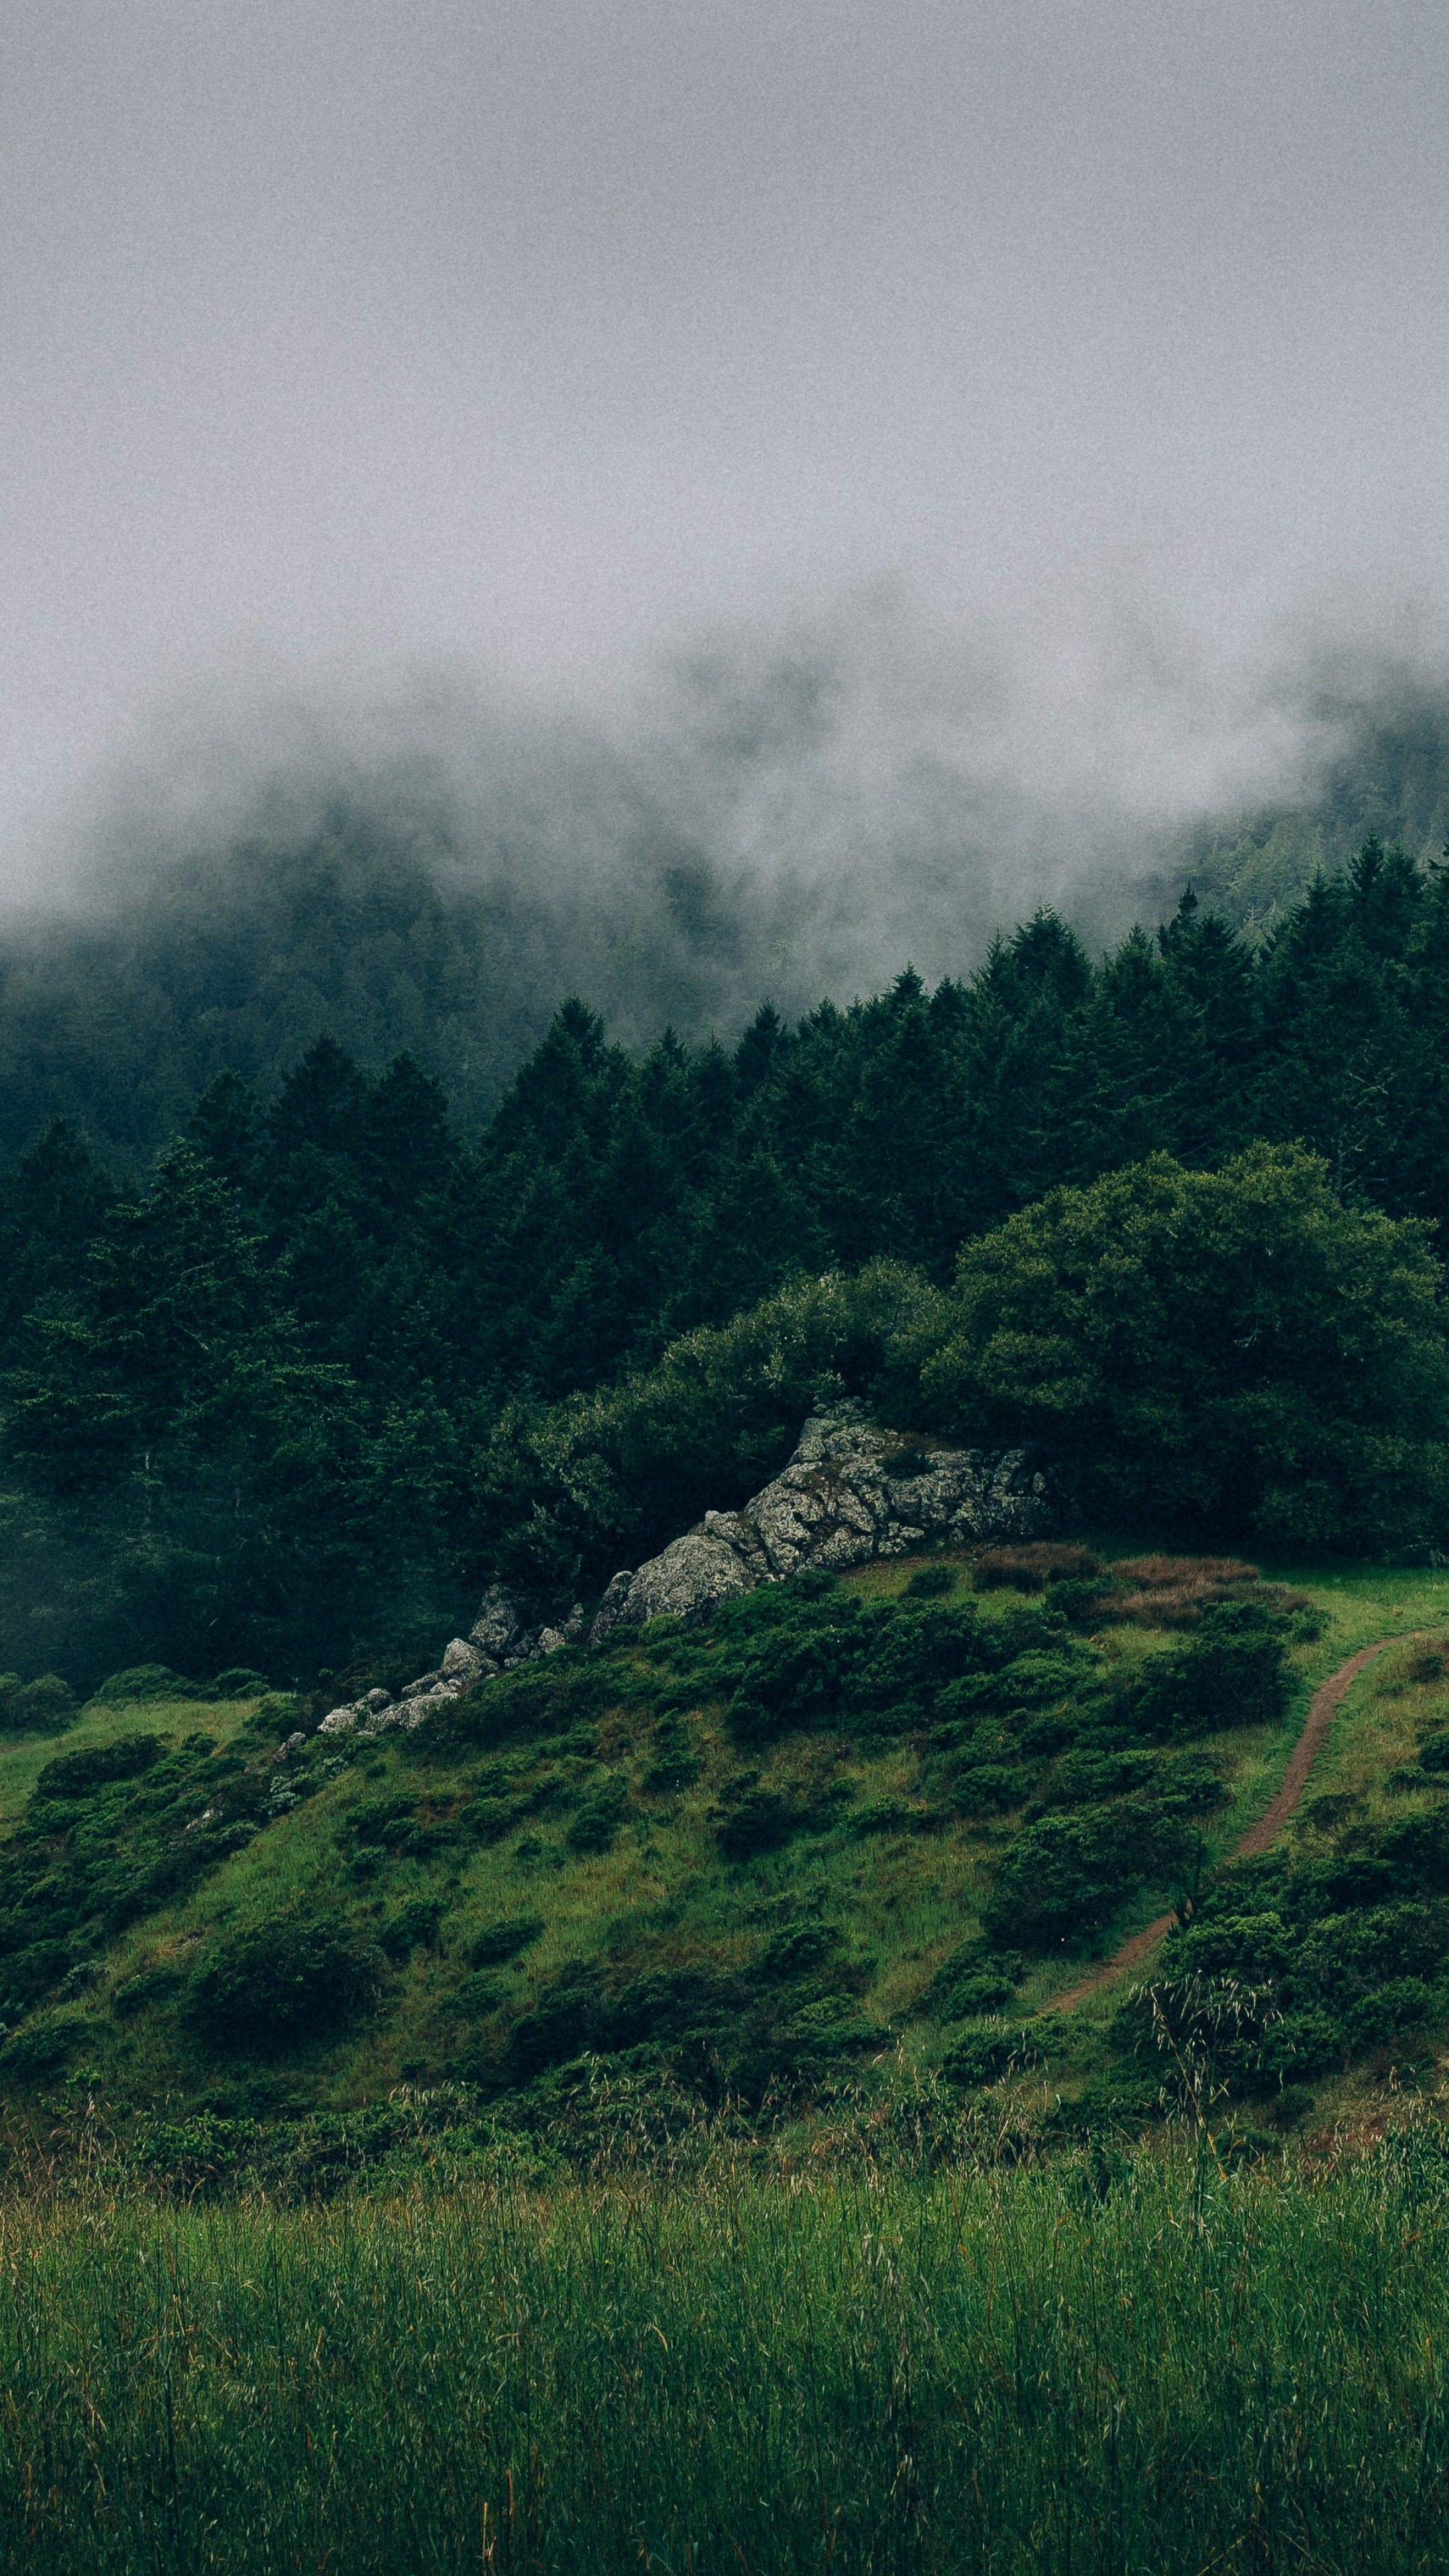 Wallpaper Nature 8k: Wallpaper Forest, 5k, 4k Wallpaper, 8k, Mist, Hills, Fog